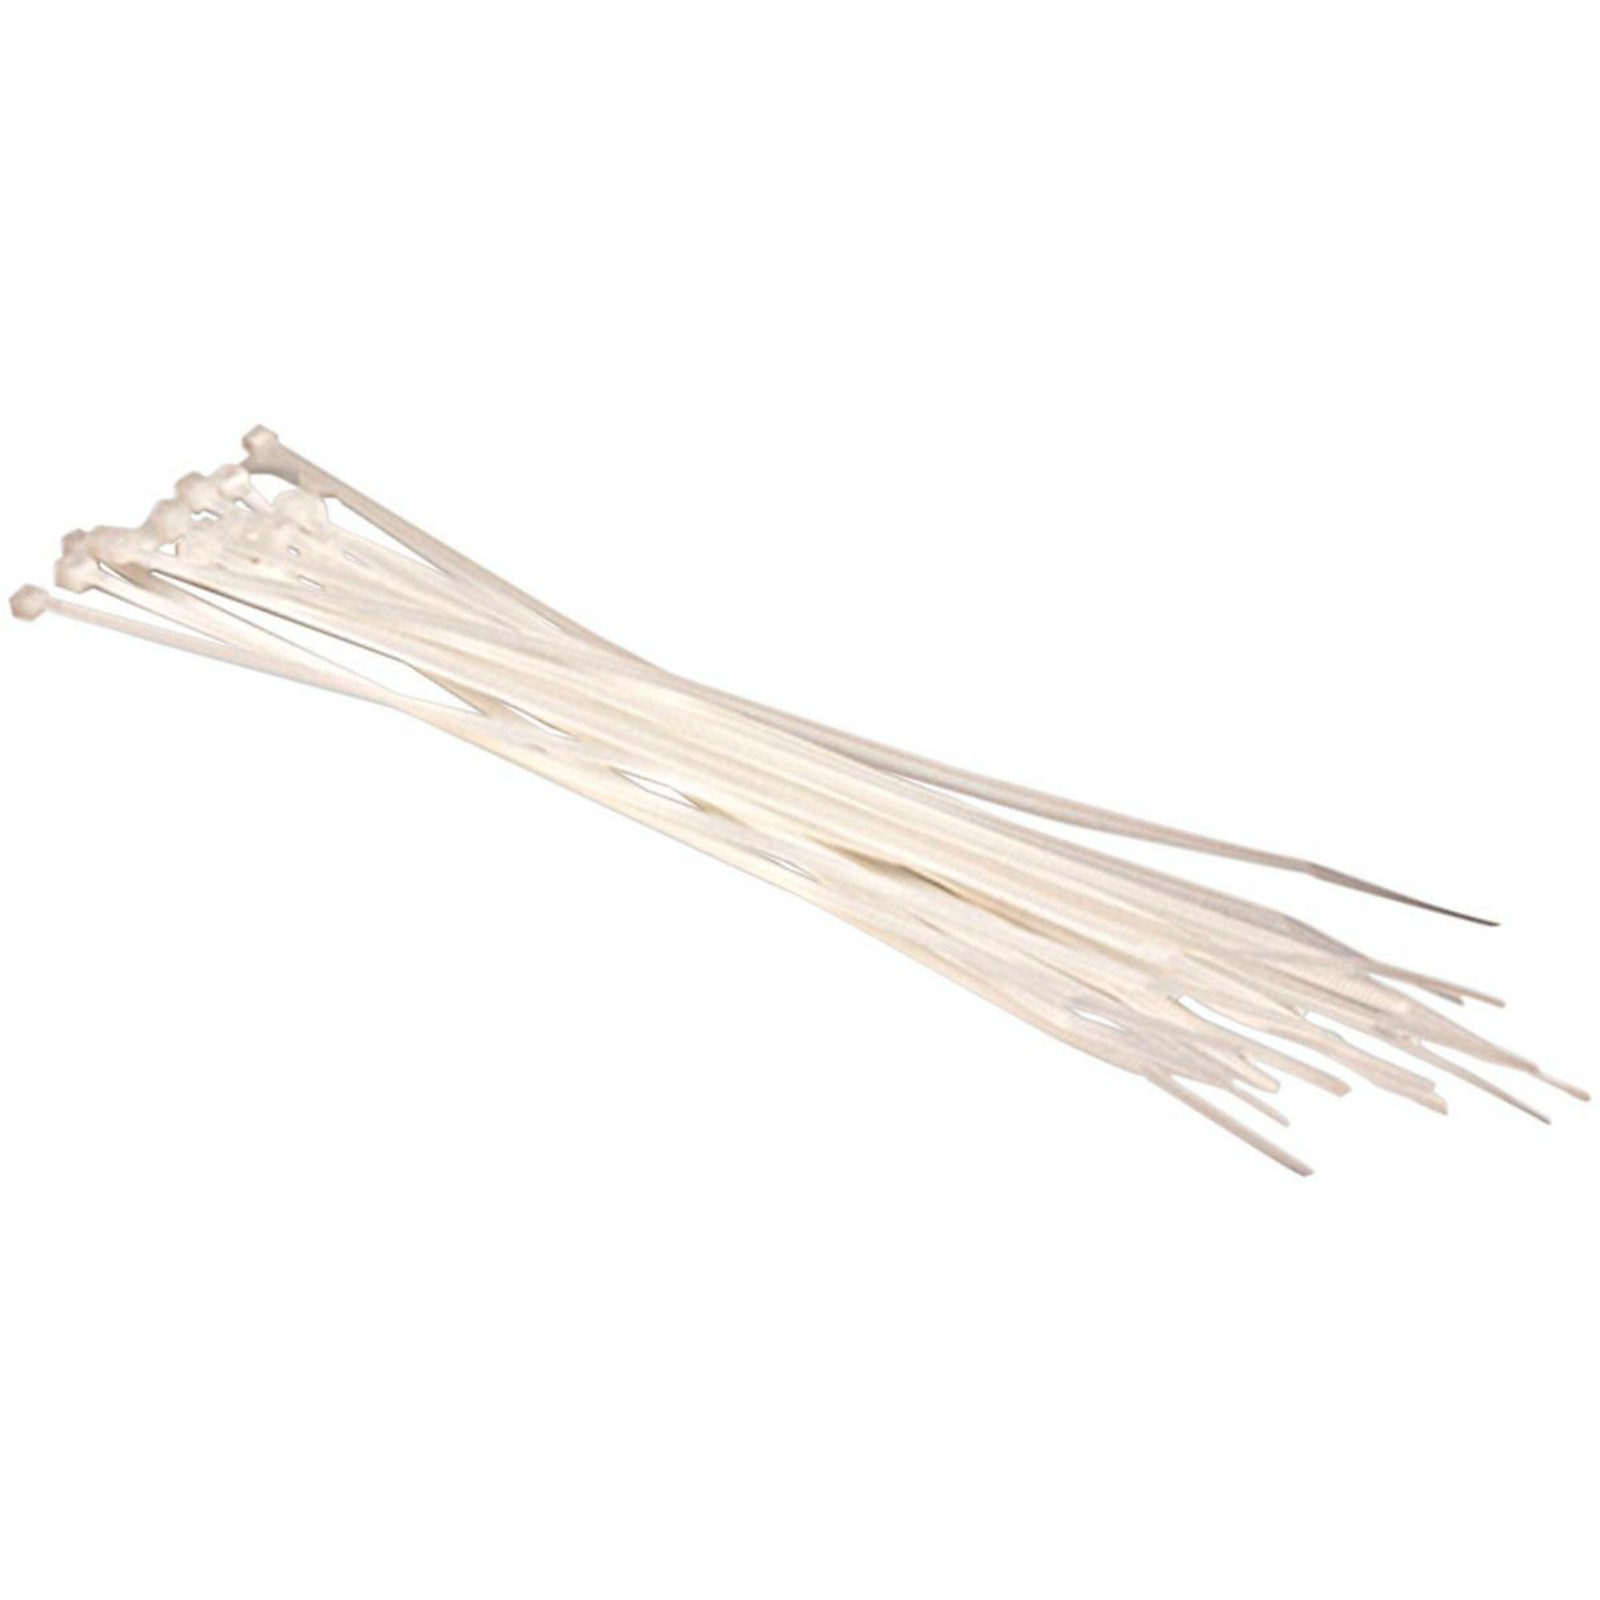 Open Box Hosa WTi173 Cable Ties (20 Pack)